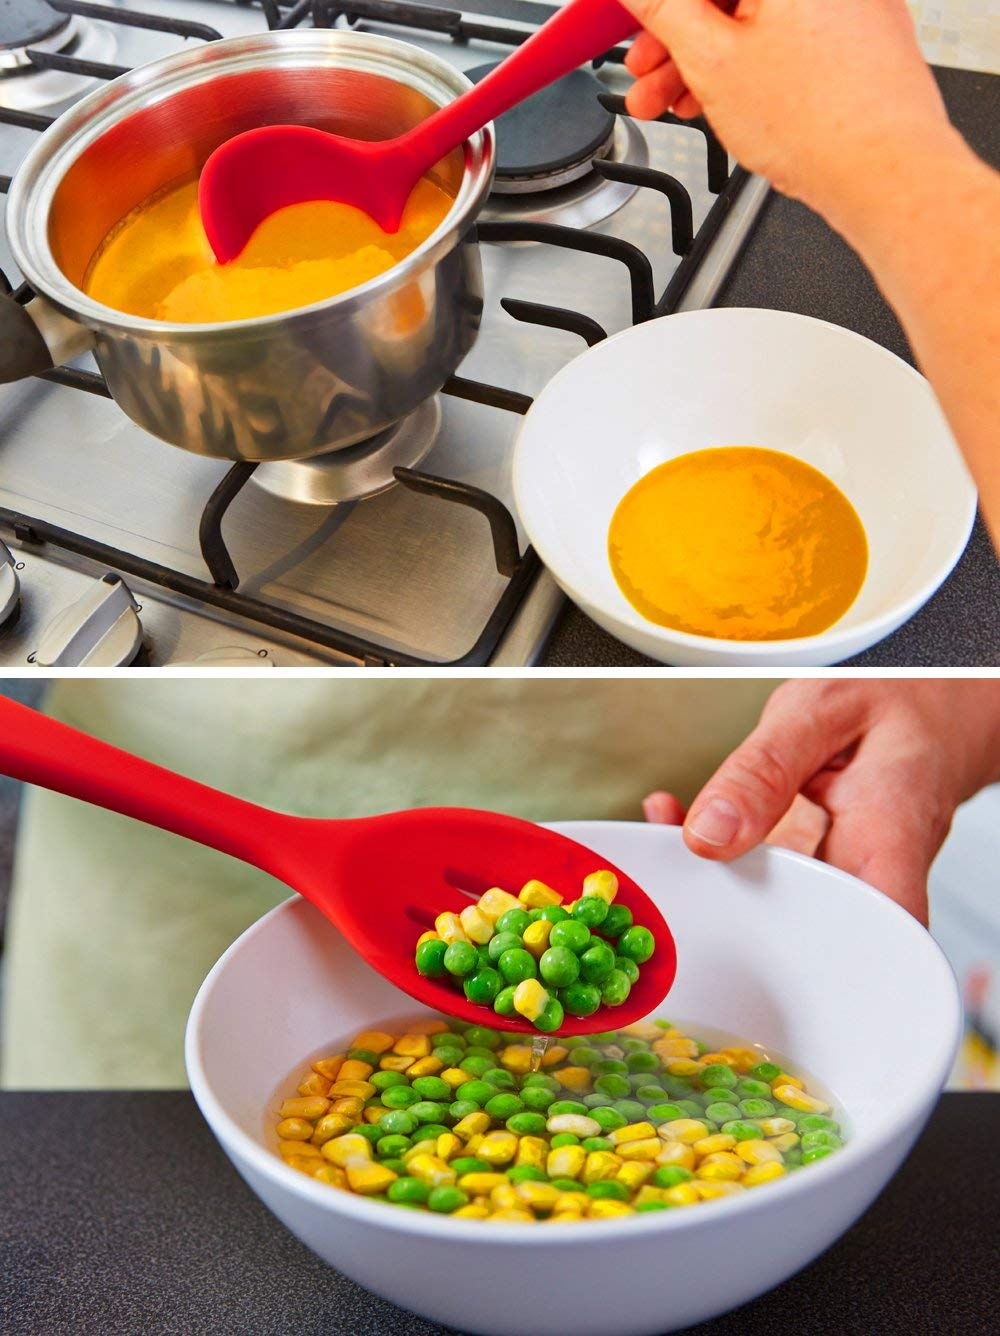 5PCS Silicone Utensil Set